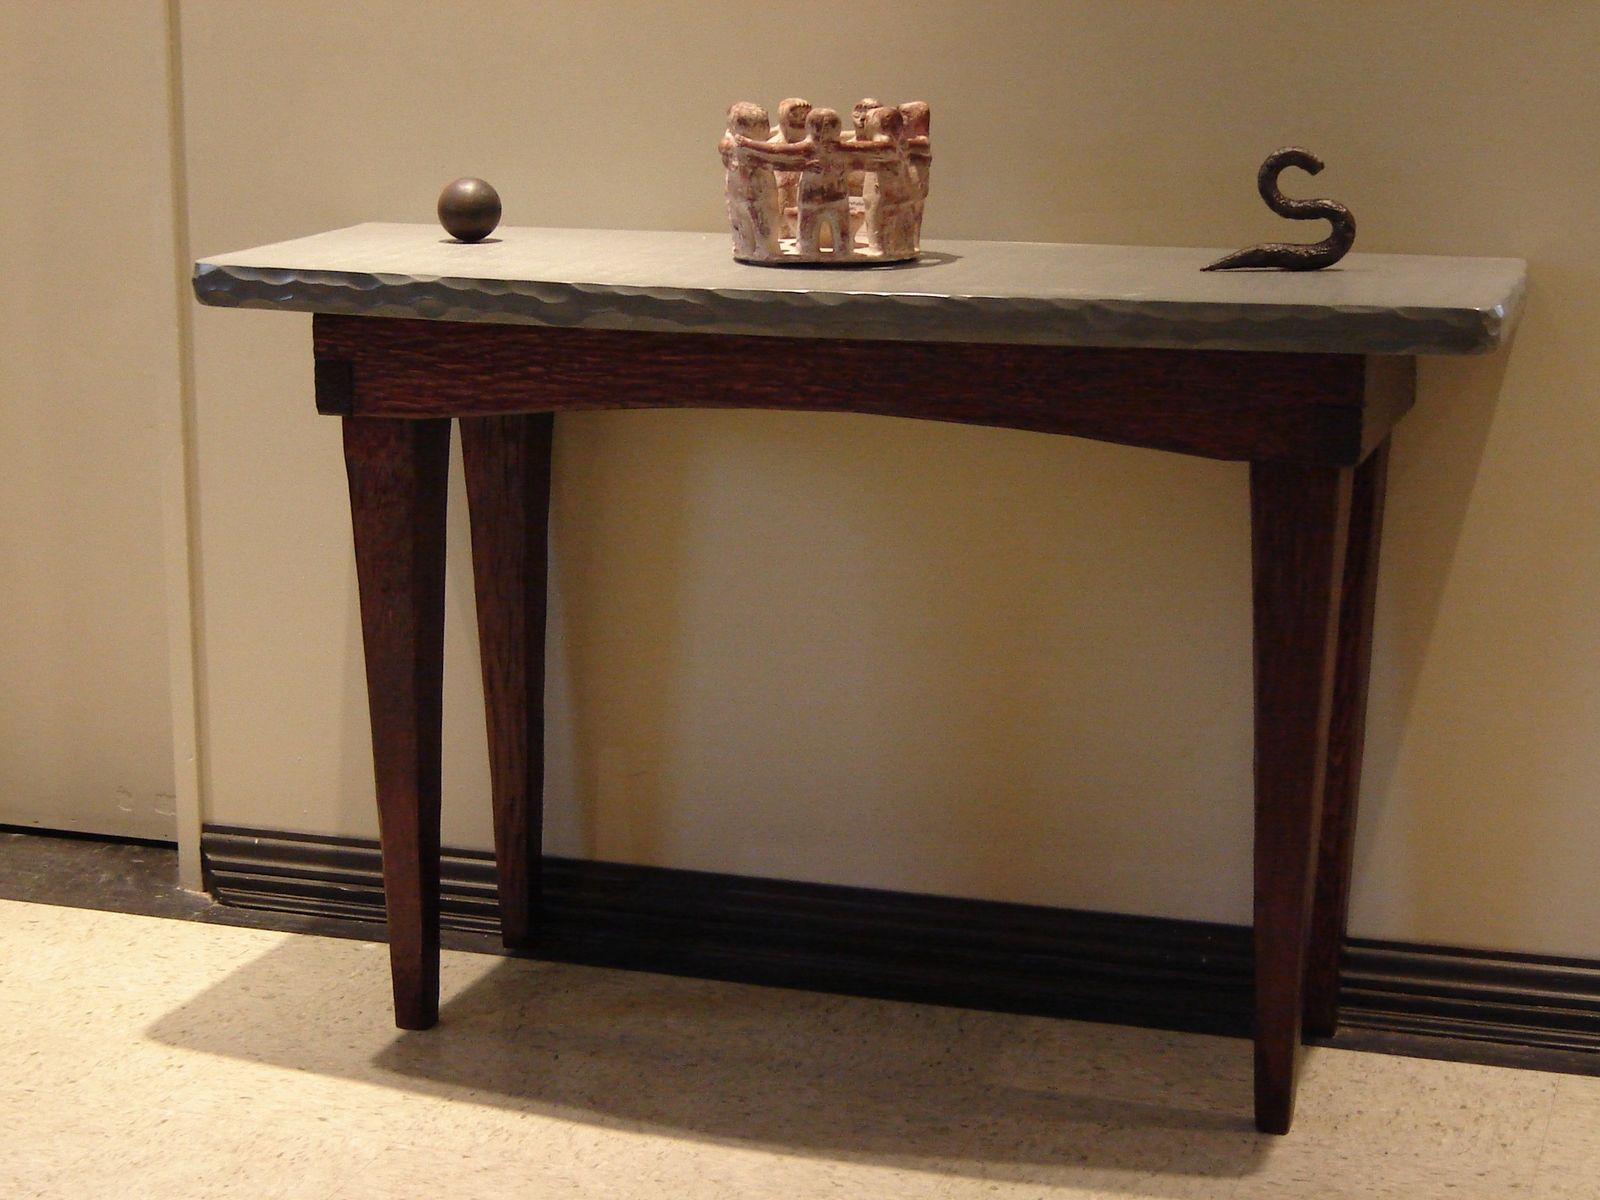 Foyer Table Chairs : Custom foyer table stone and wood by stonehunterstudio